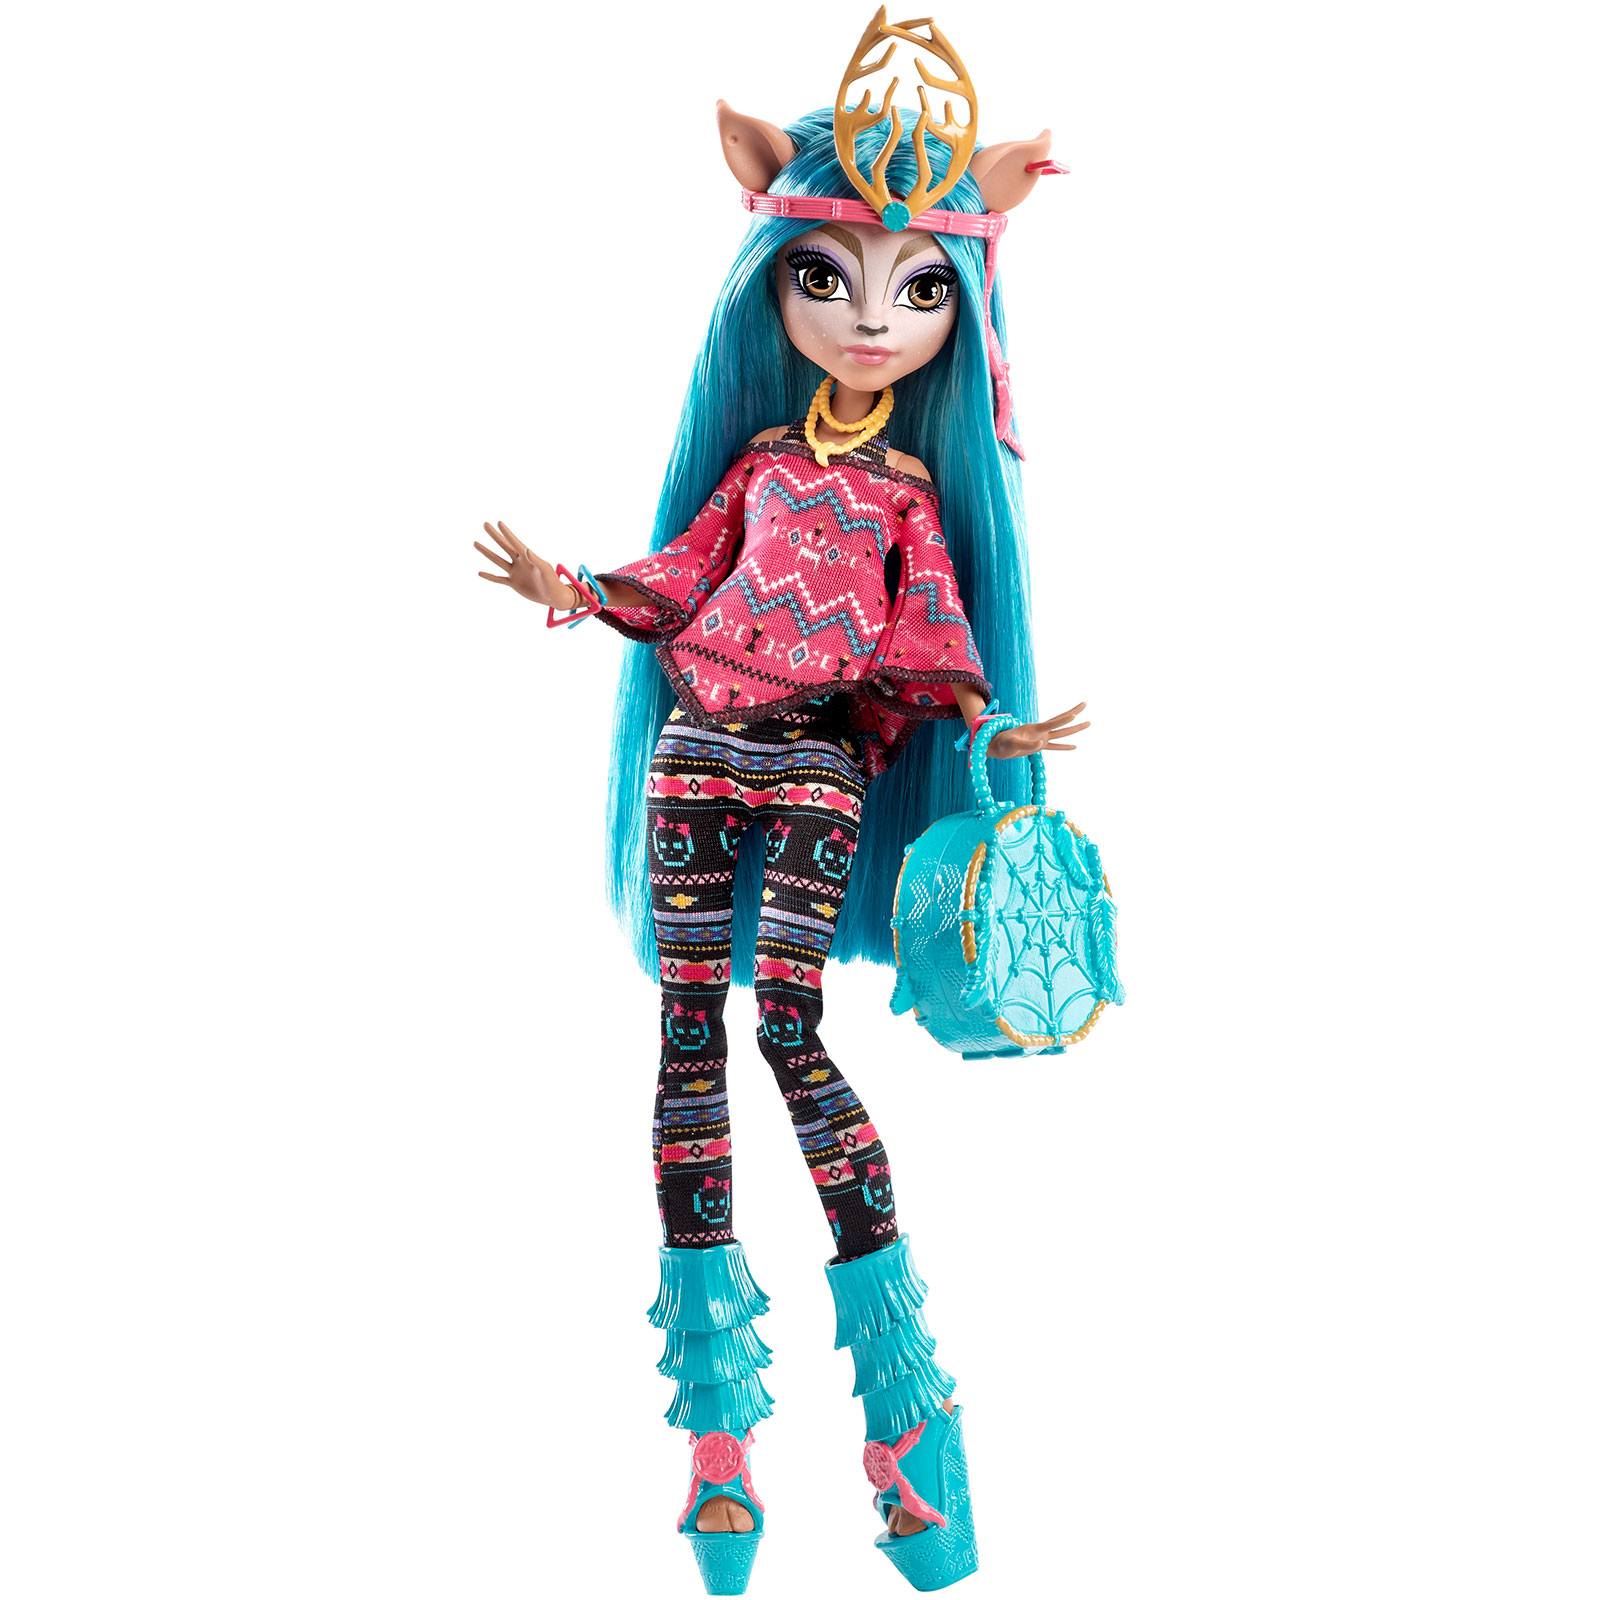 Monster High Brand-boo Students Isi Dawndancer Doll - Toys & Games Dolls Accessories